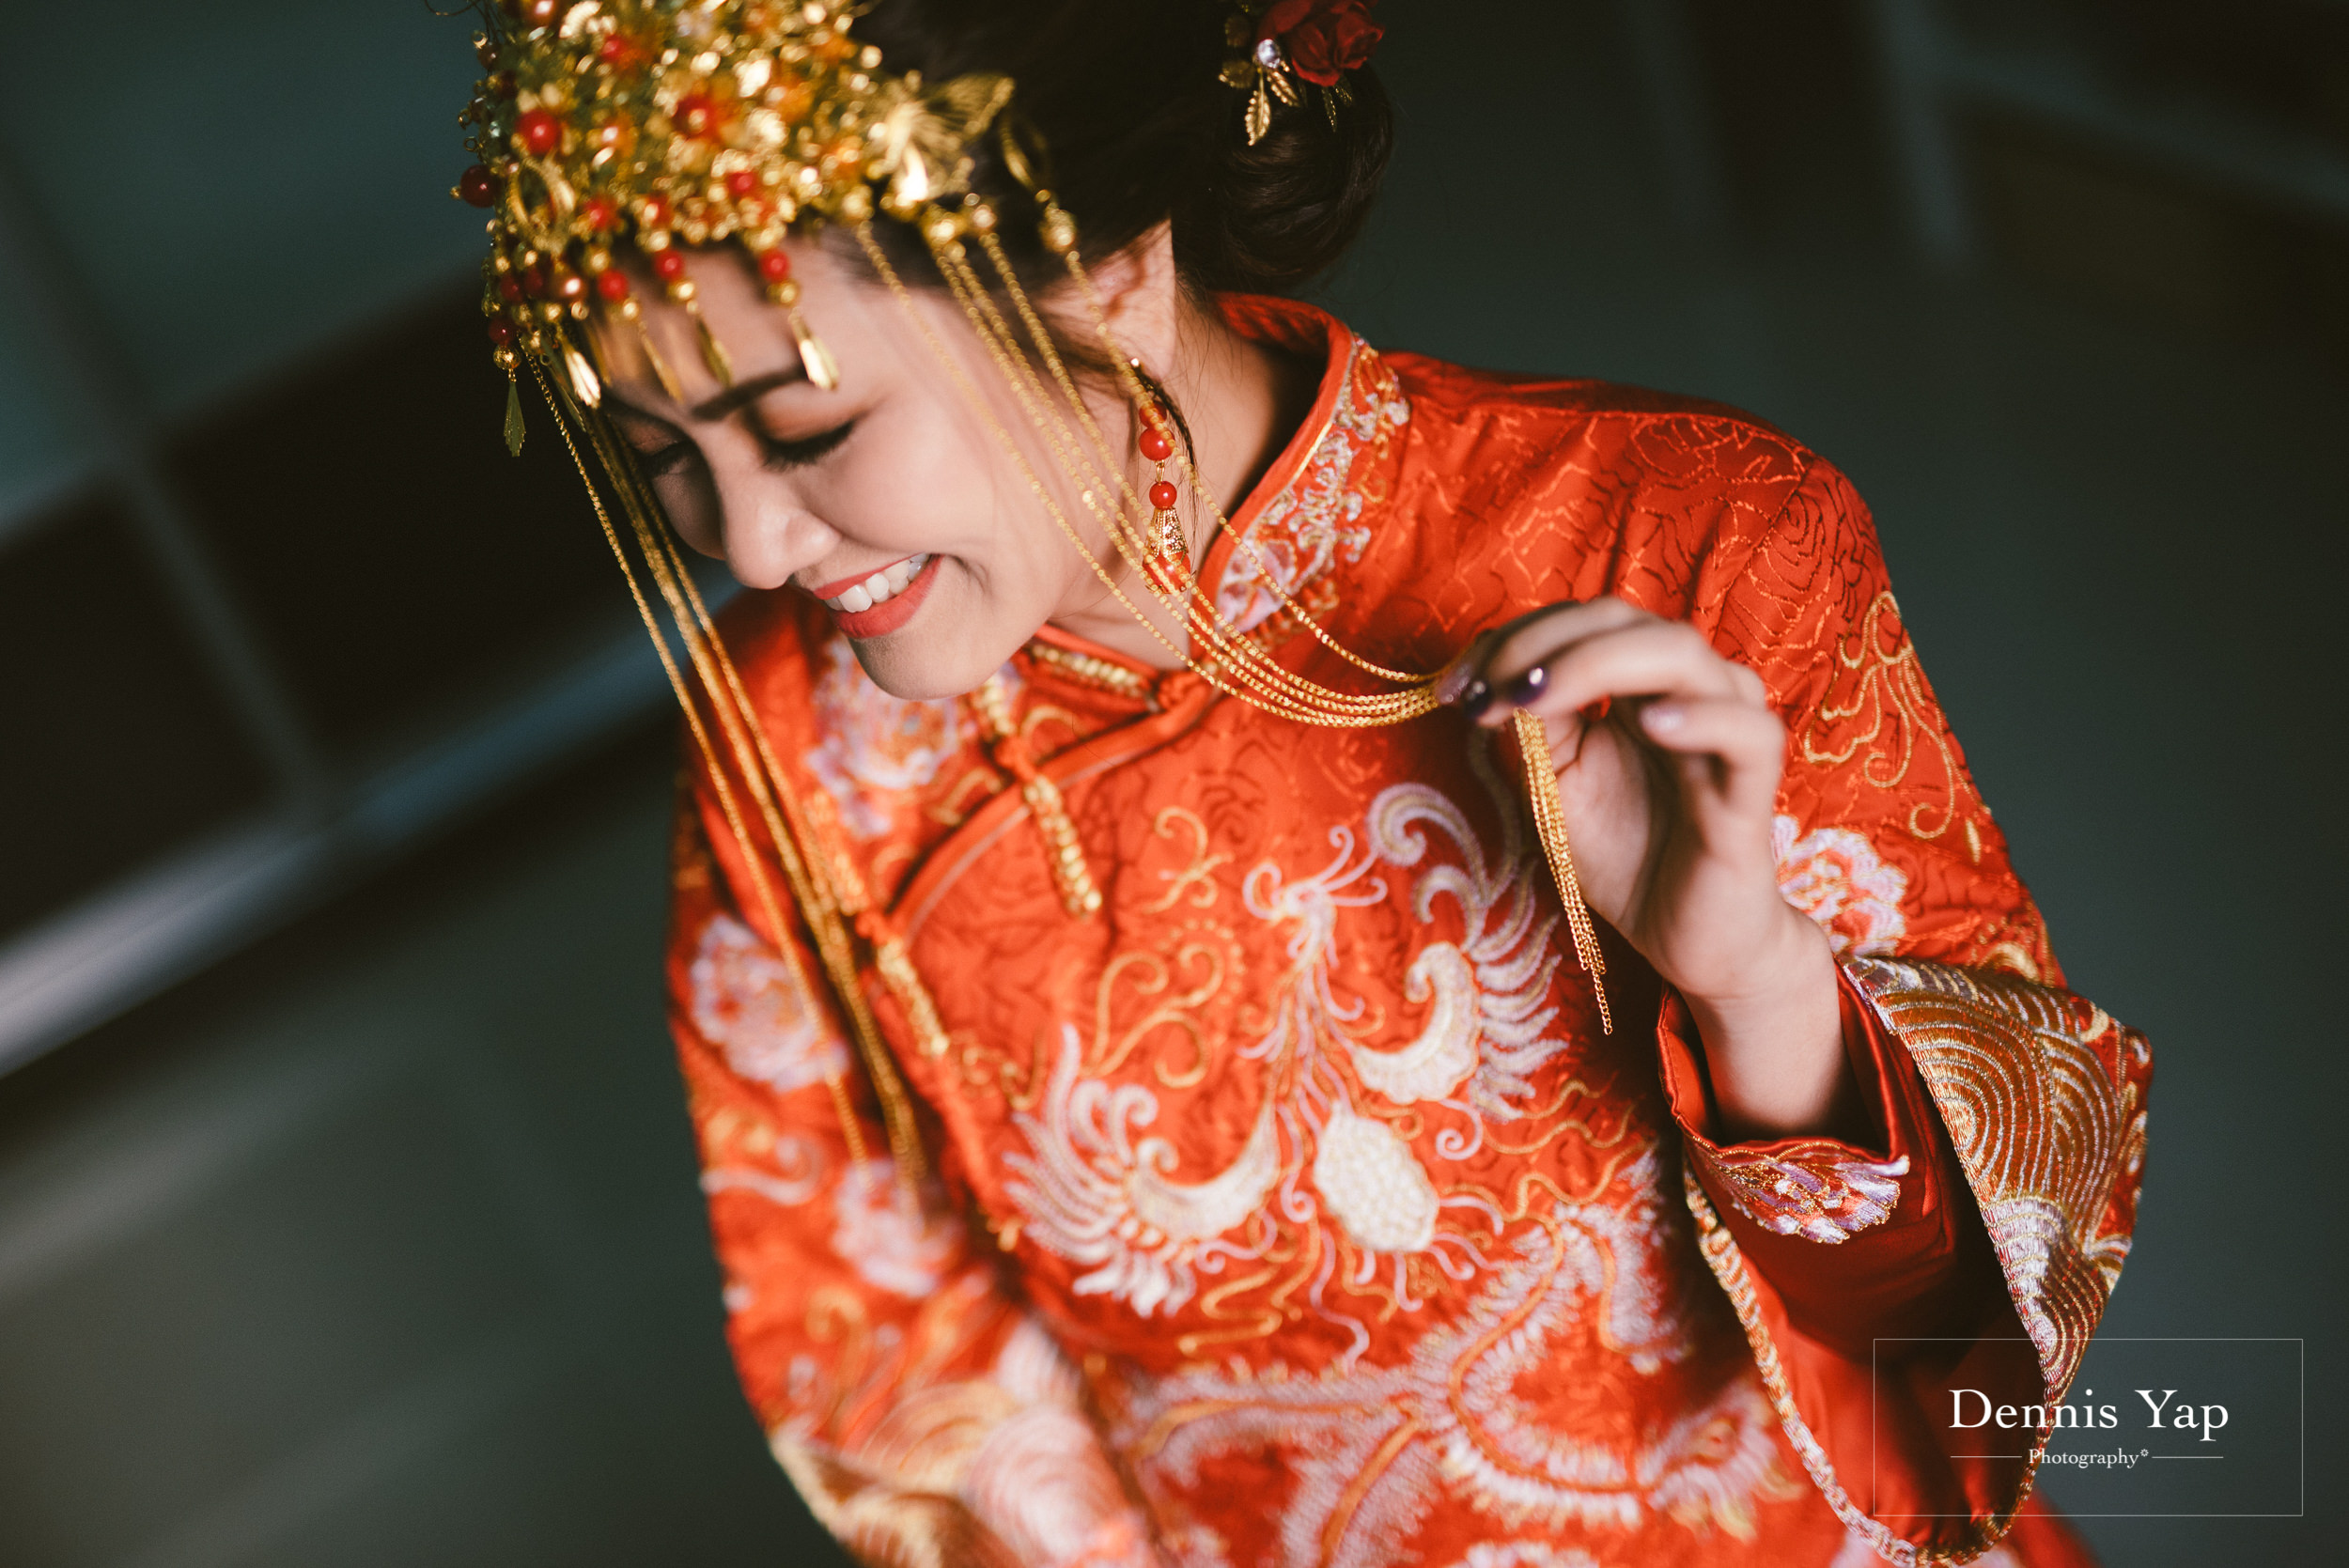 jimmy mellissa wedding day traditional chinese kua dennis yap photography-4.jpg